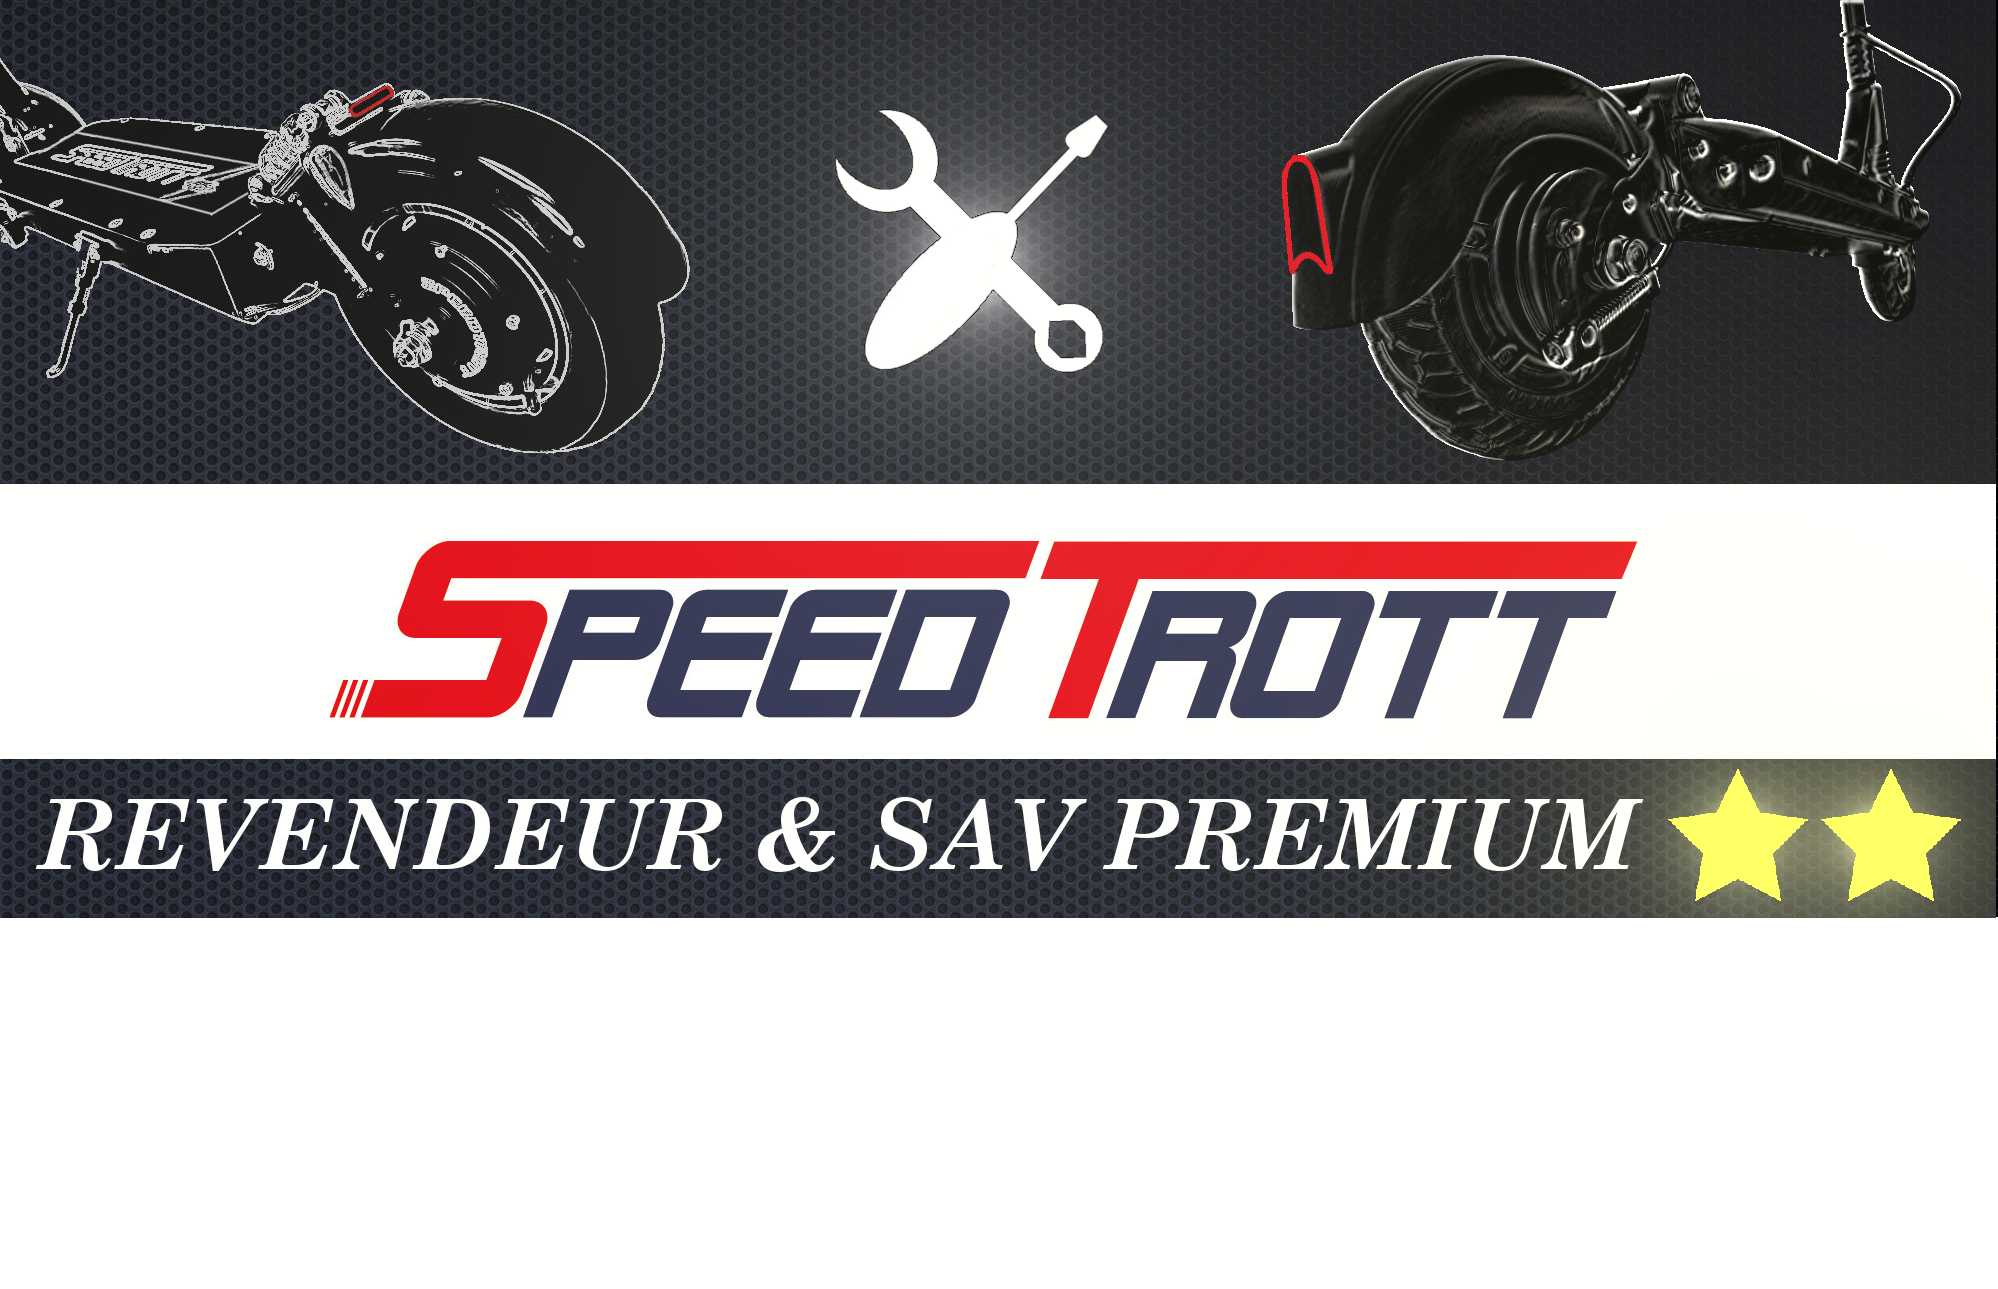 revendeur officiel SpeedTrott